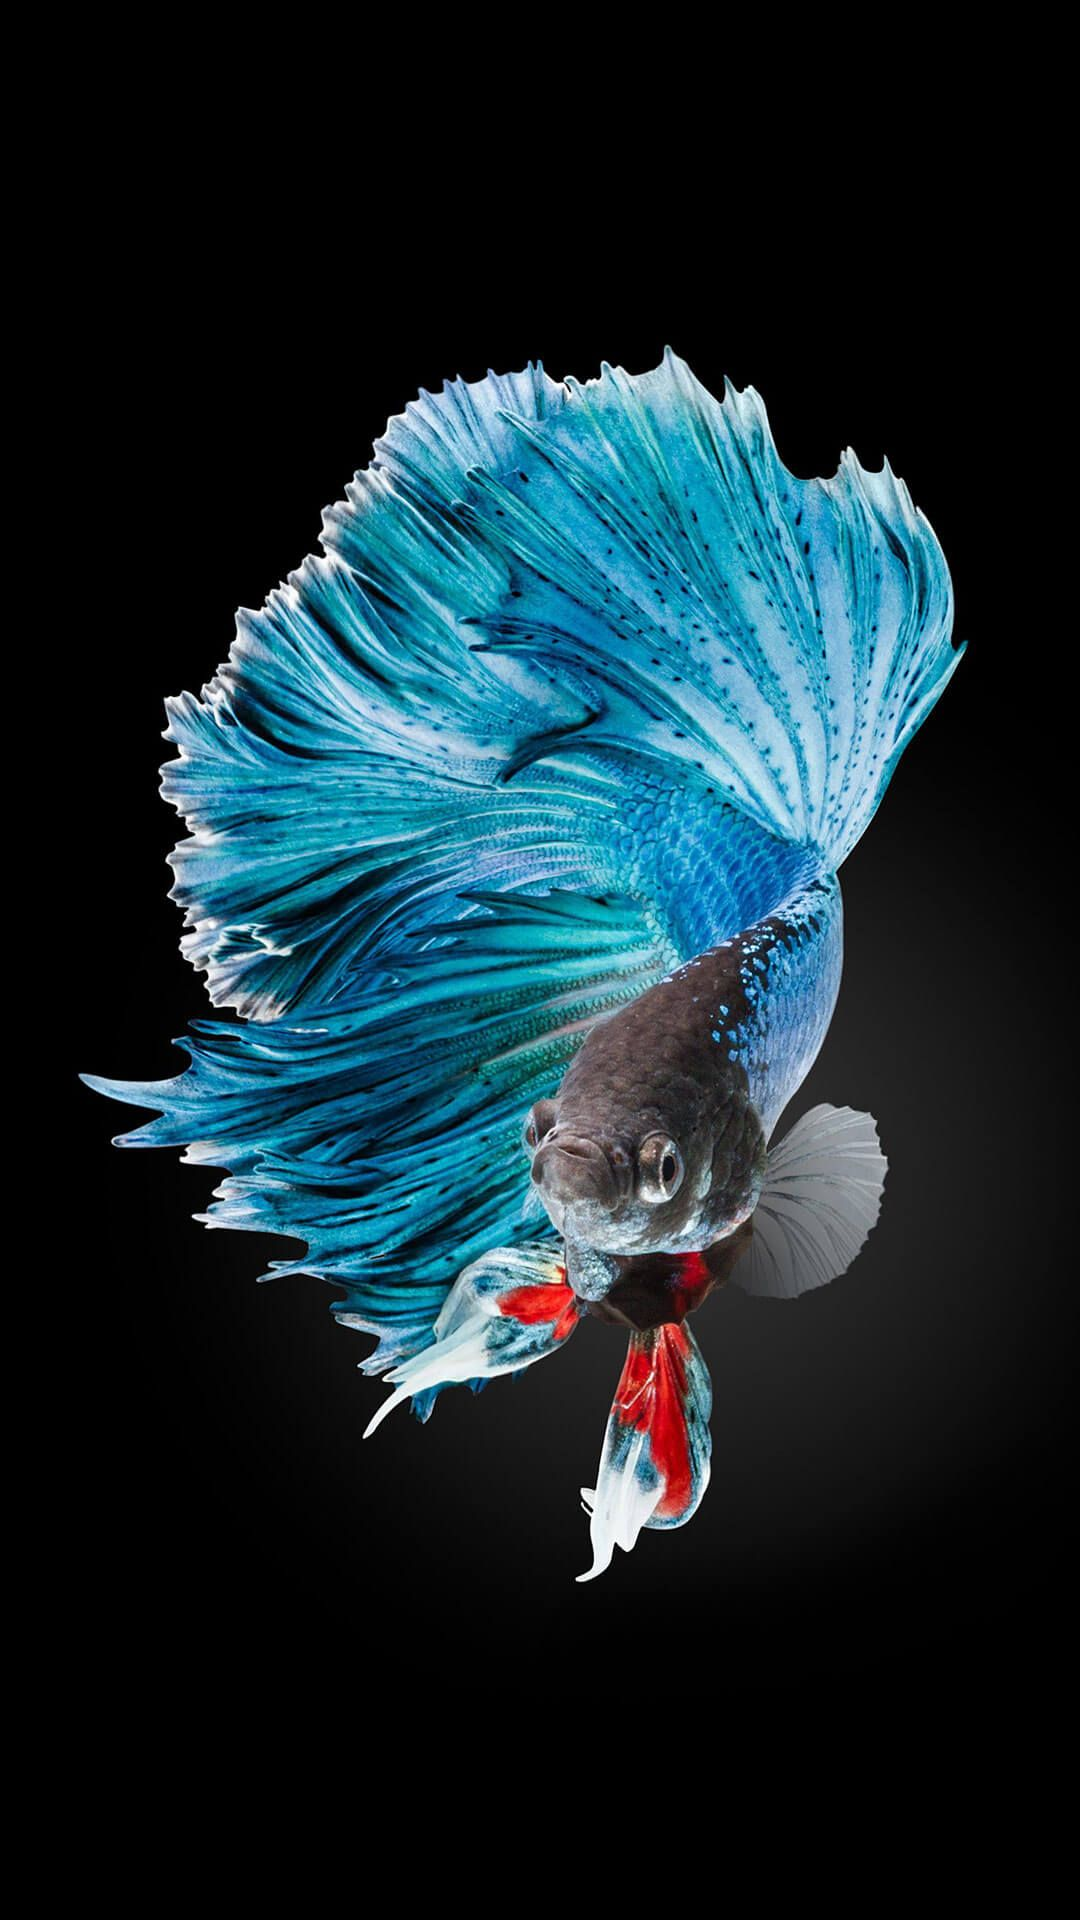 Betta Fish Wallpaper iPhone 6 And iPhone 6s HD Poisson